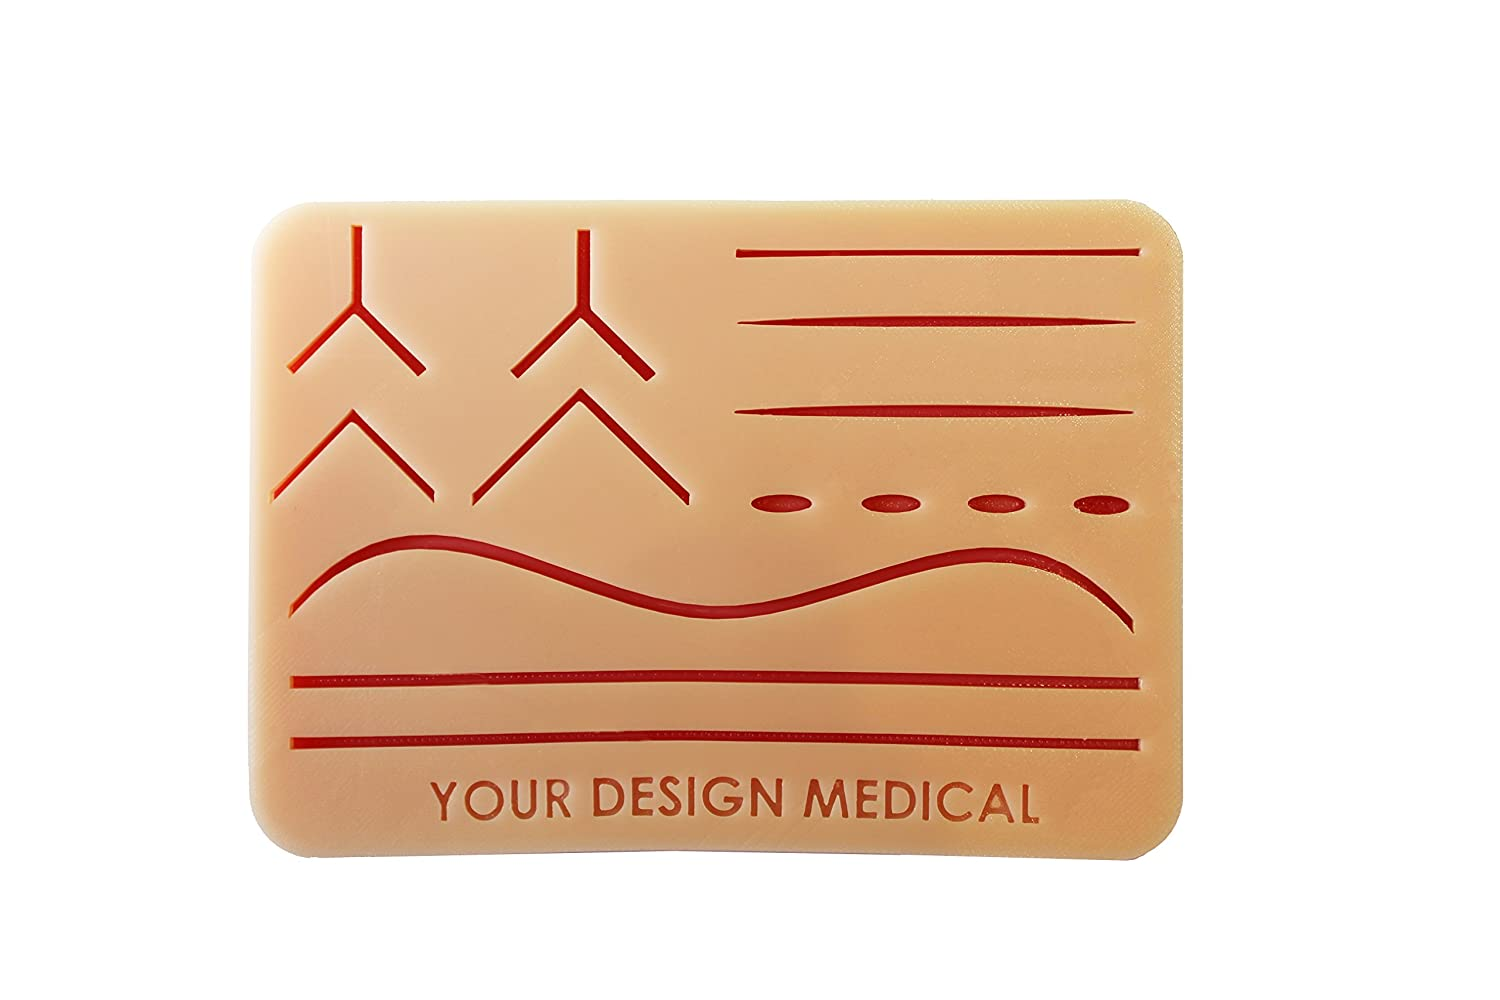 Your Design Medical – Large 7x5' Durable 3-Layer Suture Pad Kit w/Wounds for Suturing Practice – Made in Brooklyn, USA – Authentic Brand/Beware Our Knock Offs -– Includes Free Educational Material LDSPWW18